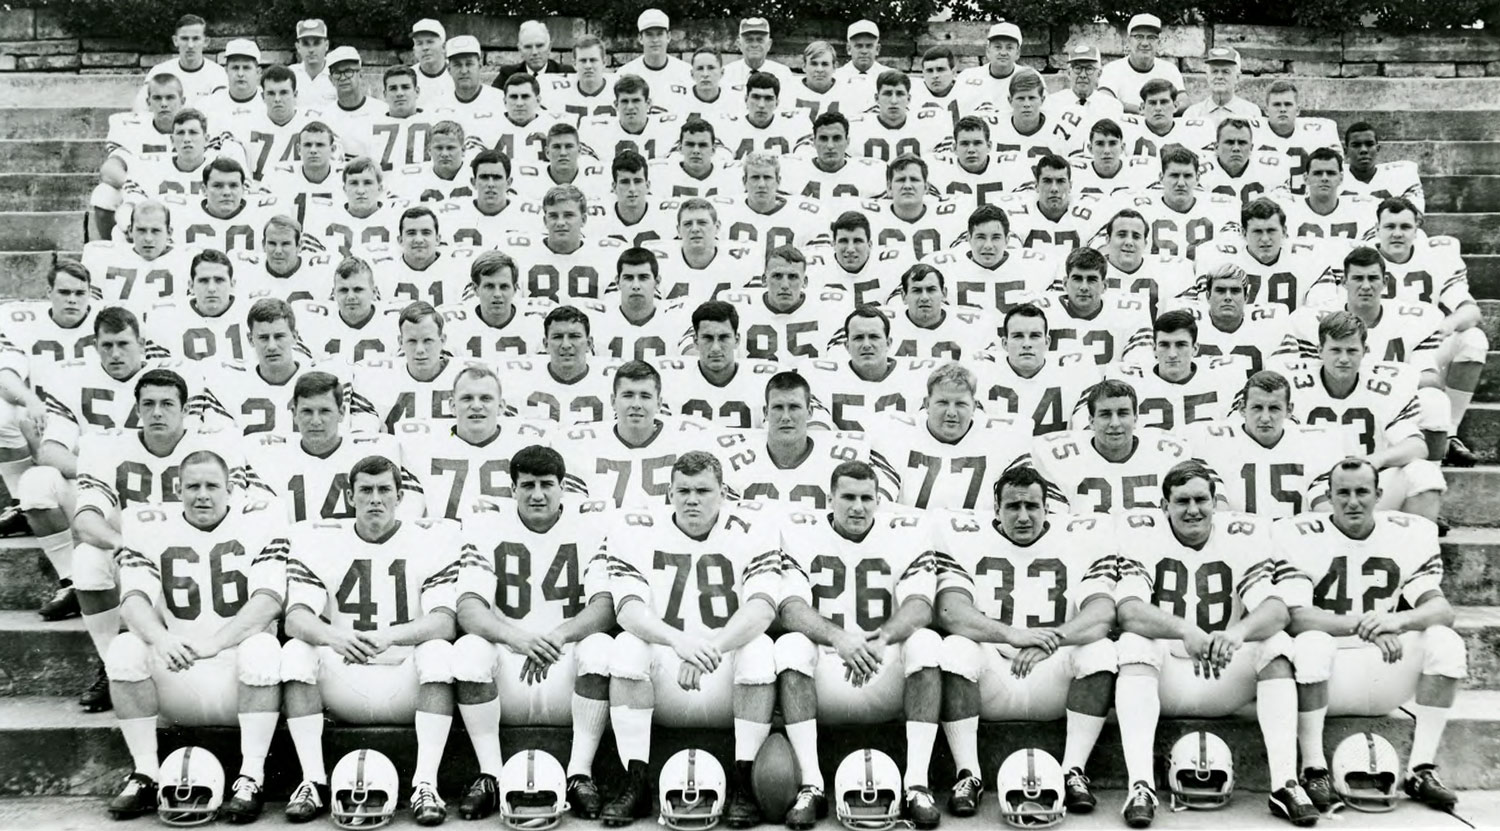 As the only African-American player on the roster, Marcus Martin was a singular presence in this 1967 team photo. His teammates, he said, were supportive of his inclusion.